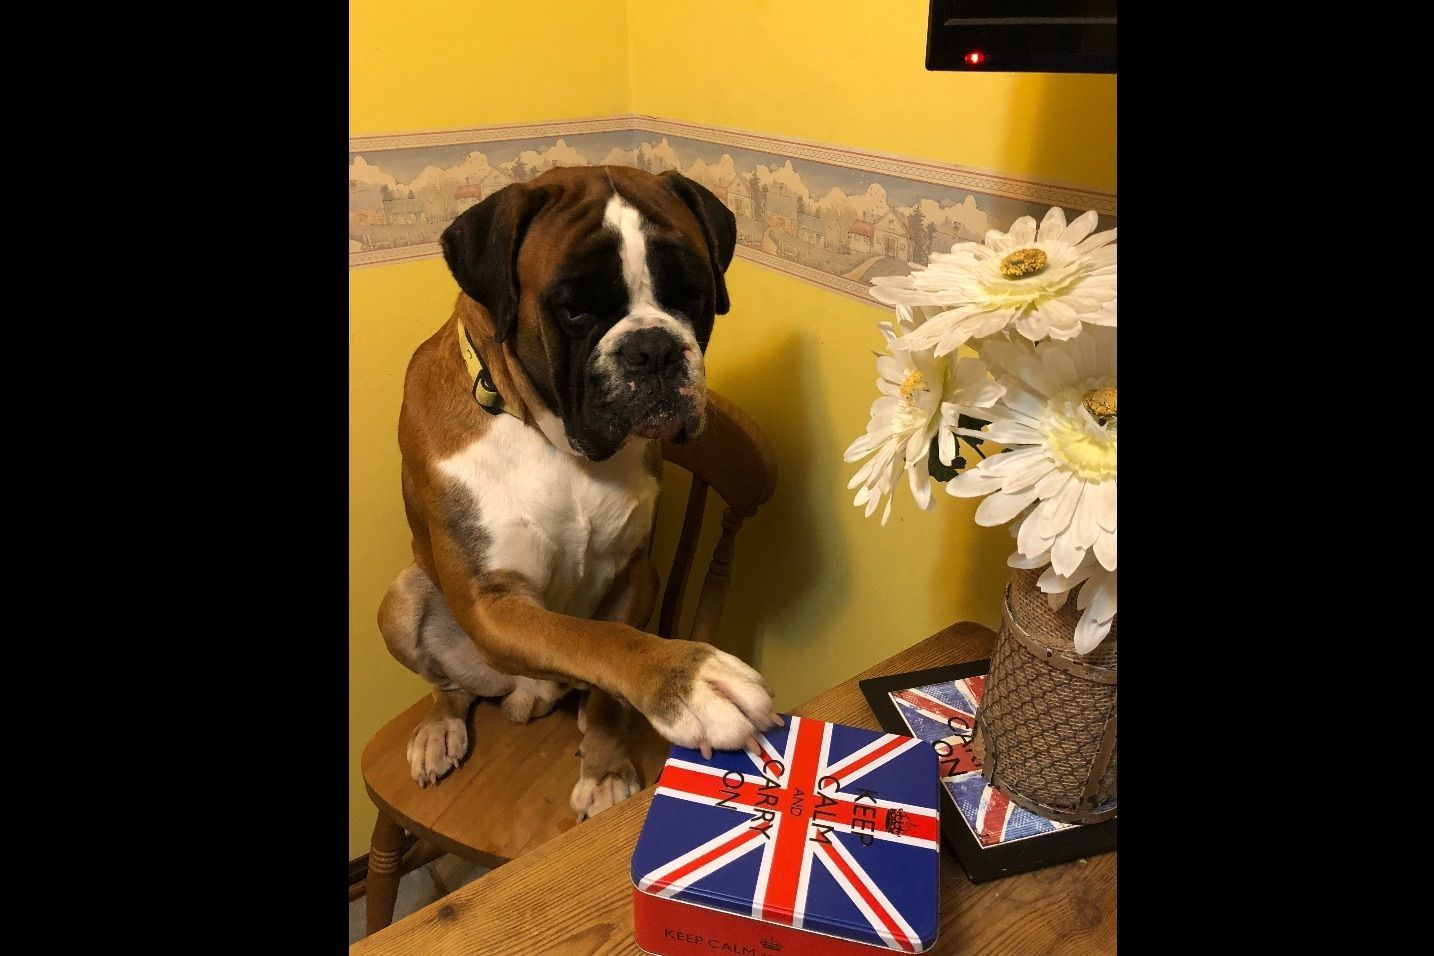 Aleman German Boxers Has Puppies For Sale On Akc Puppyfinder Boxer Puppies For Sale Boxer Puppies Puppies For Sale